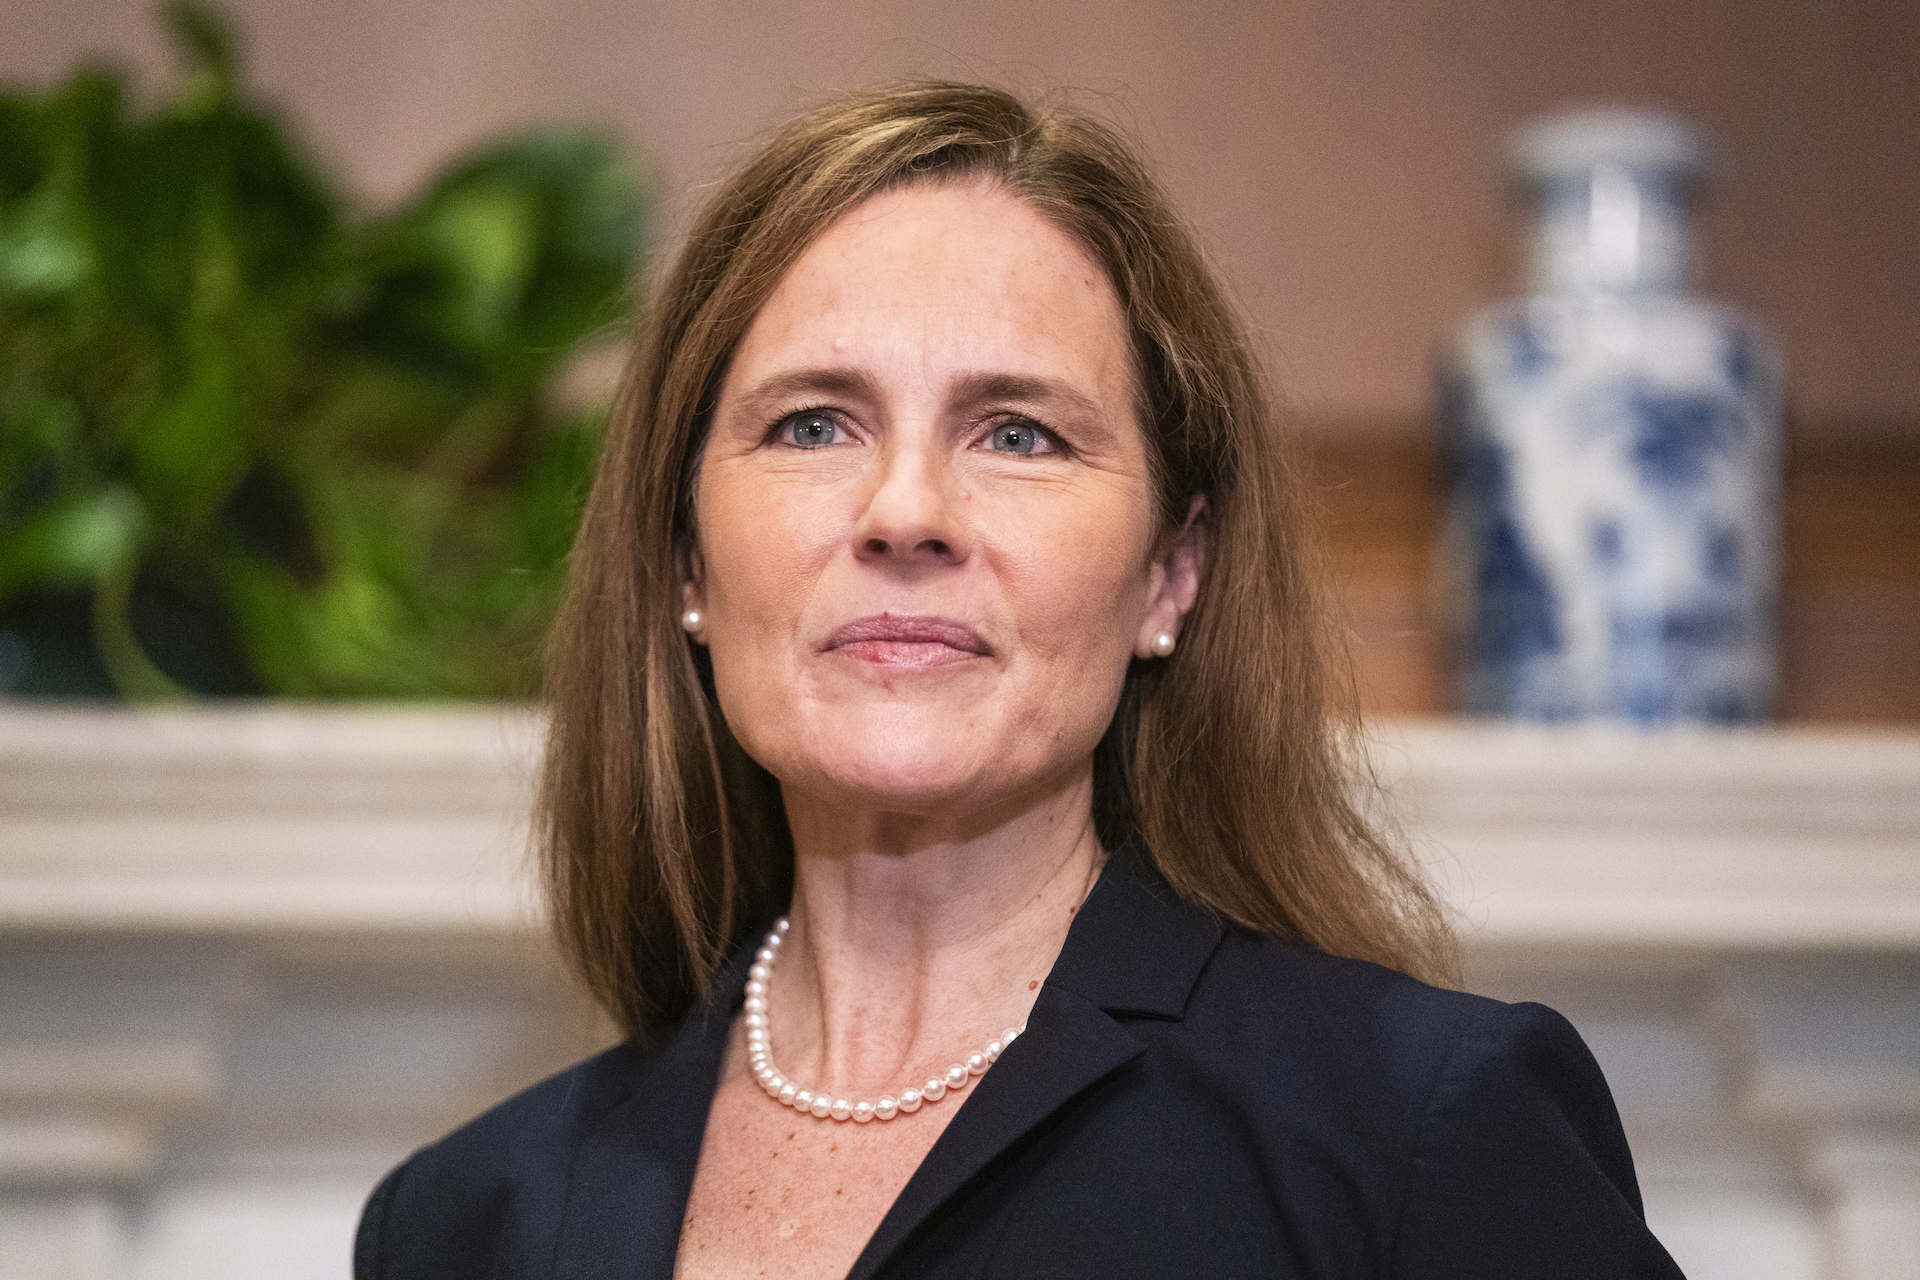 The GOP Just Broke the Rules to Advance Amy Coney Barrett